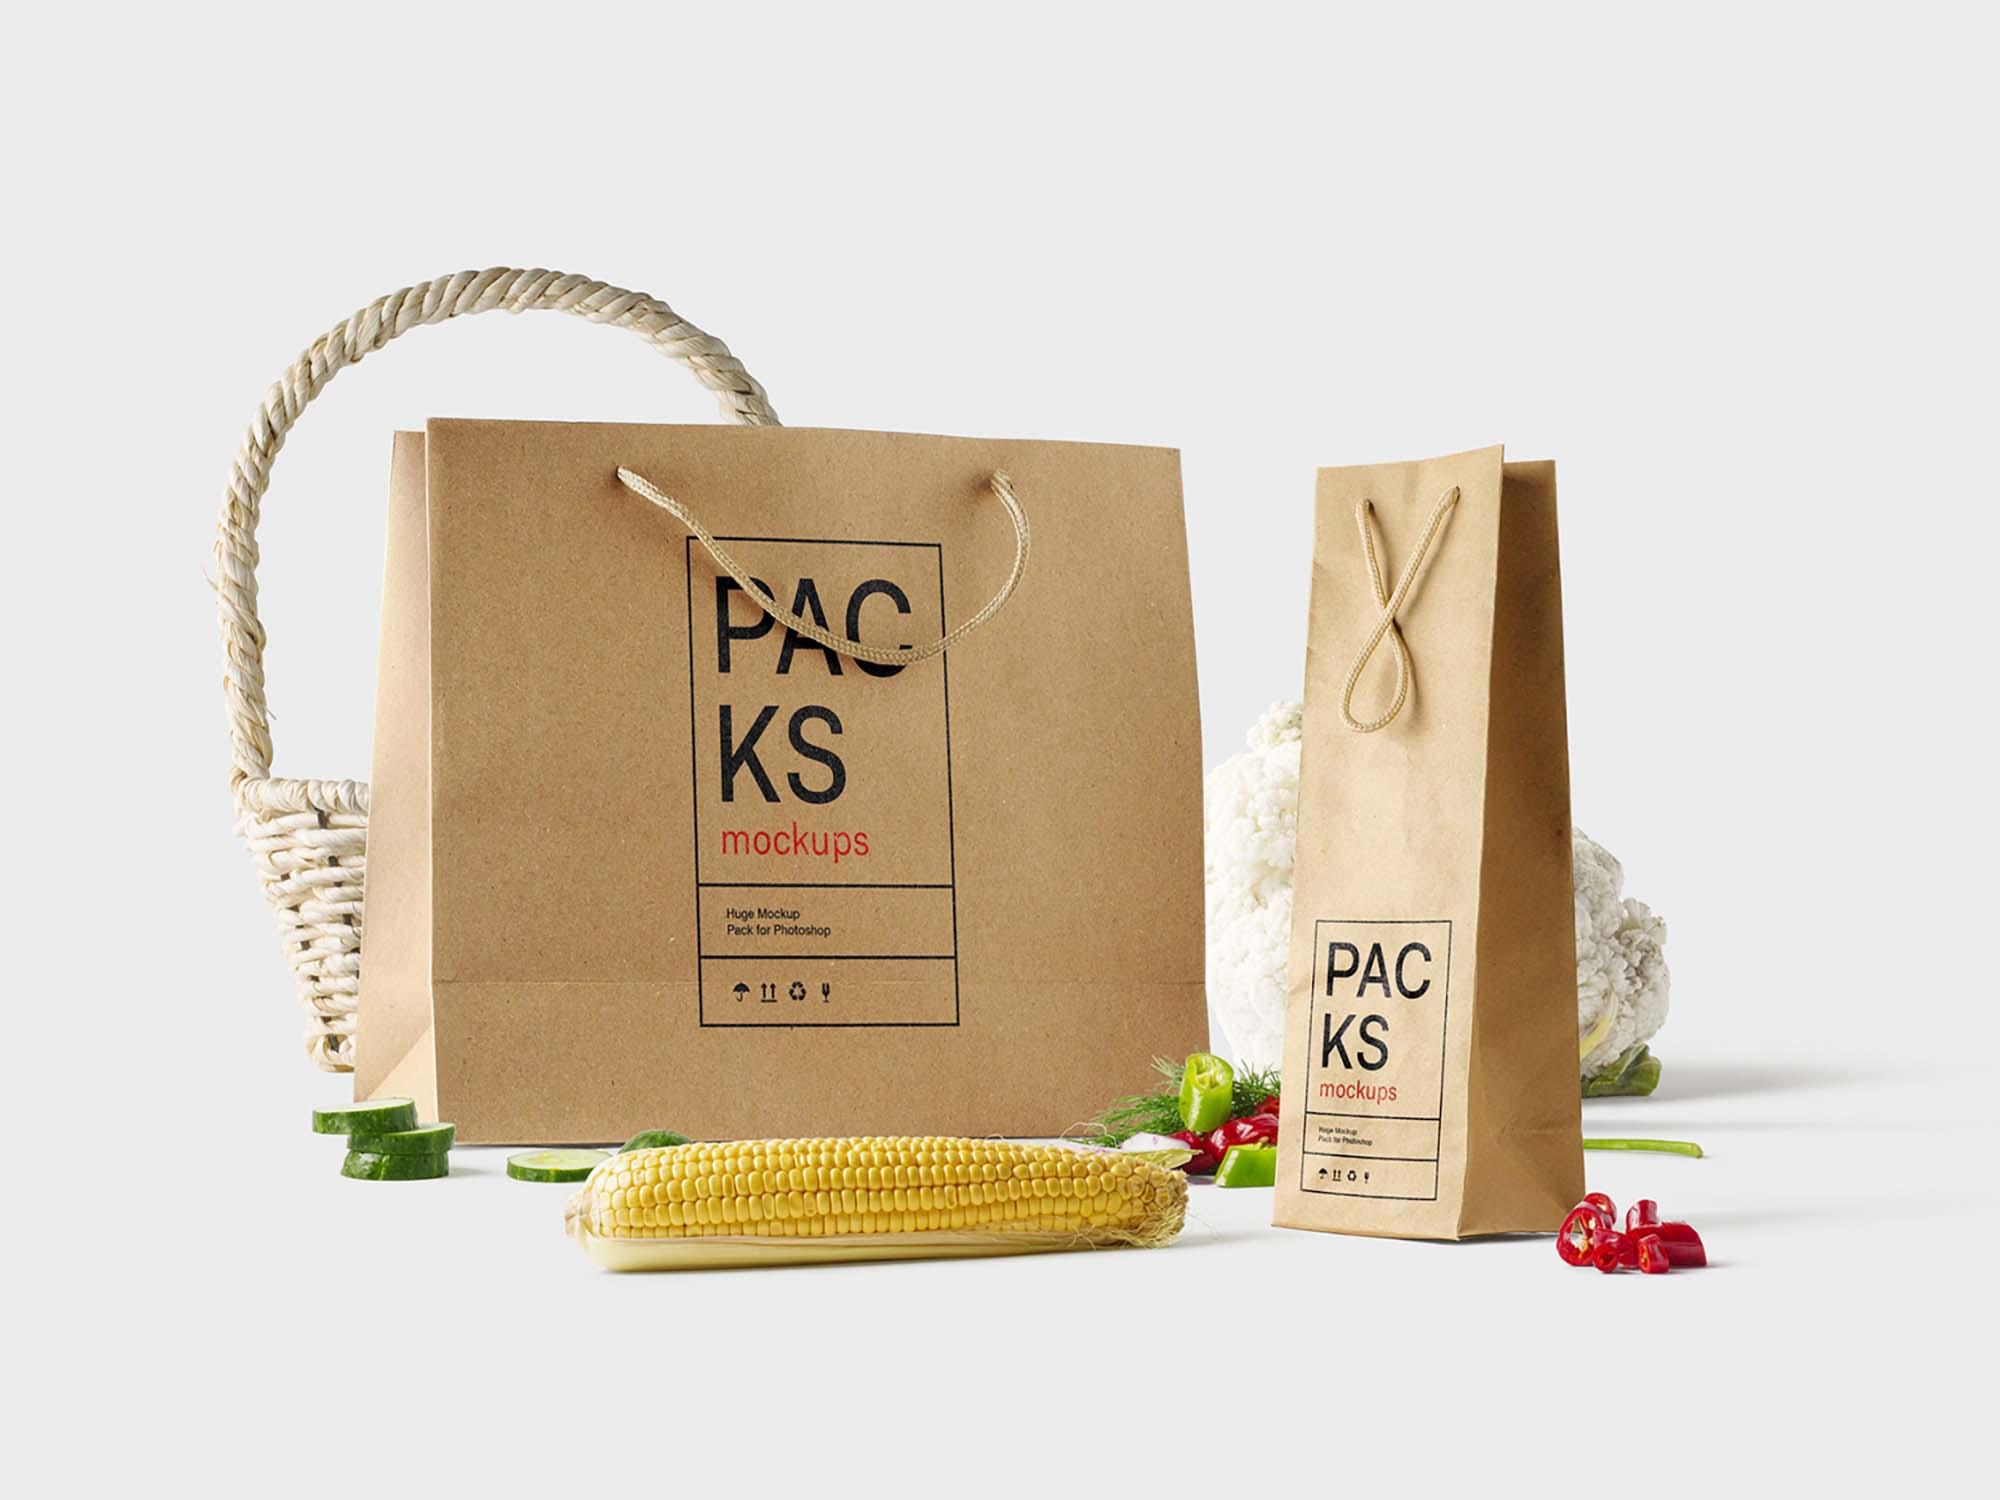 Packaging Scene Mockup